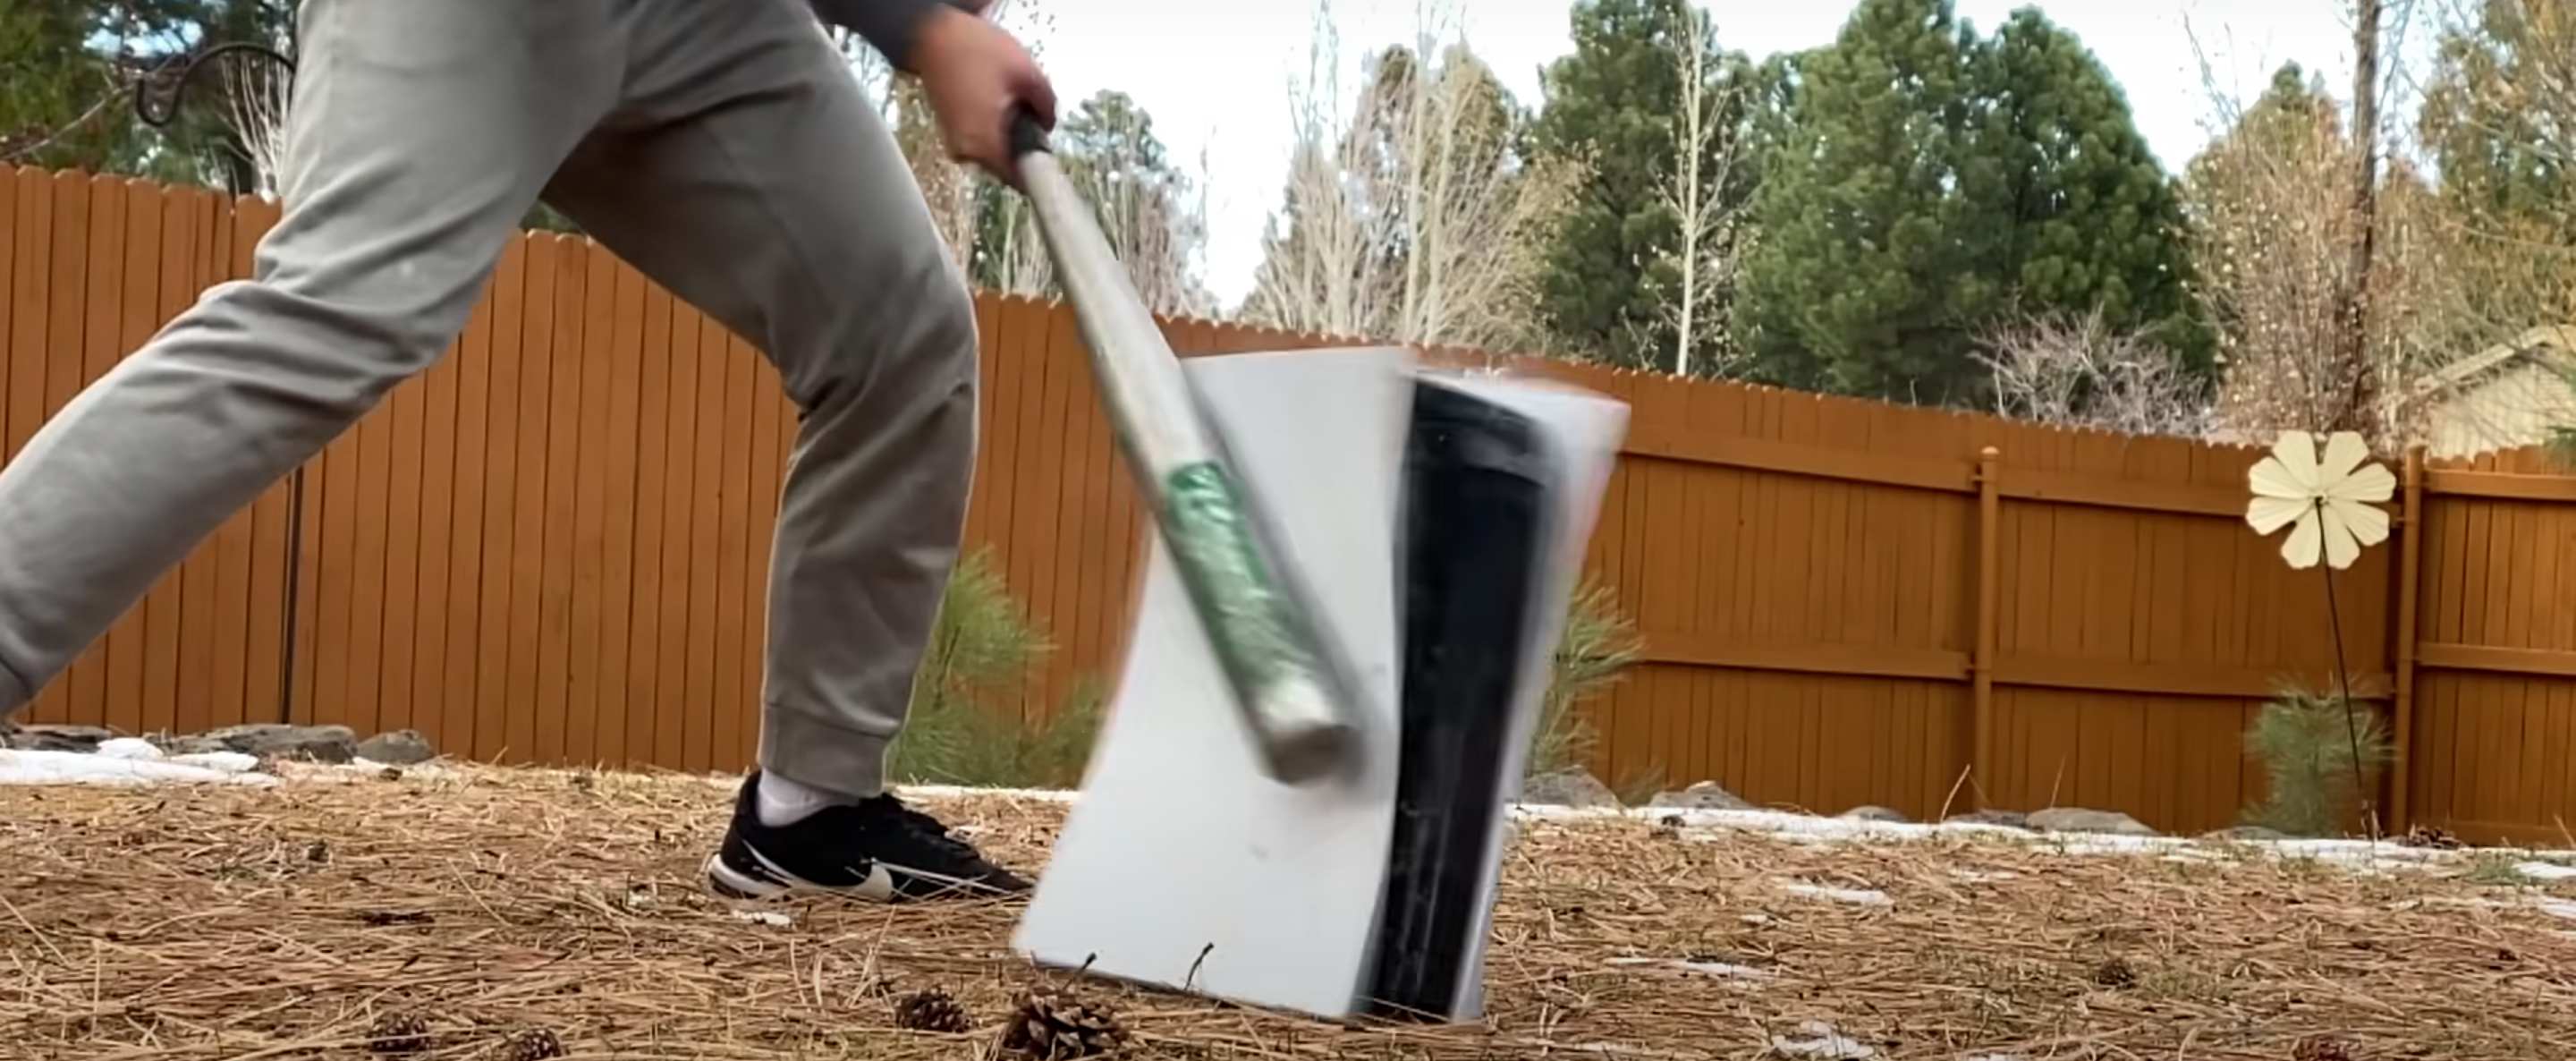 guy smashing a PS5 with baseball bat